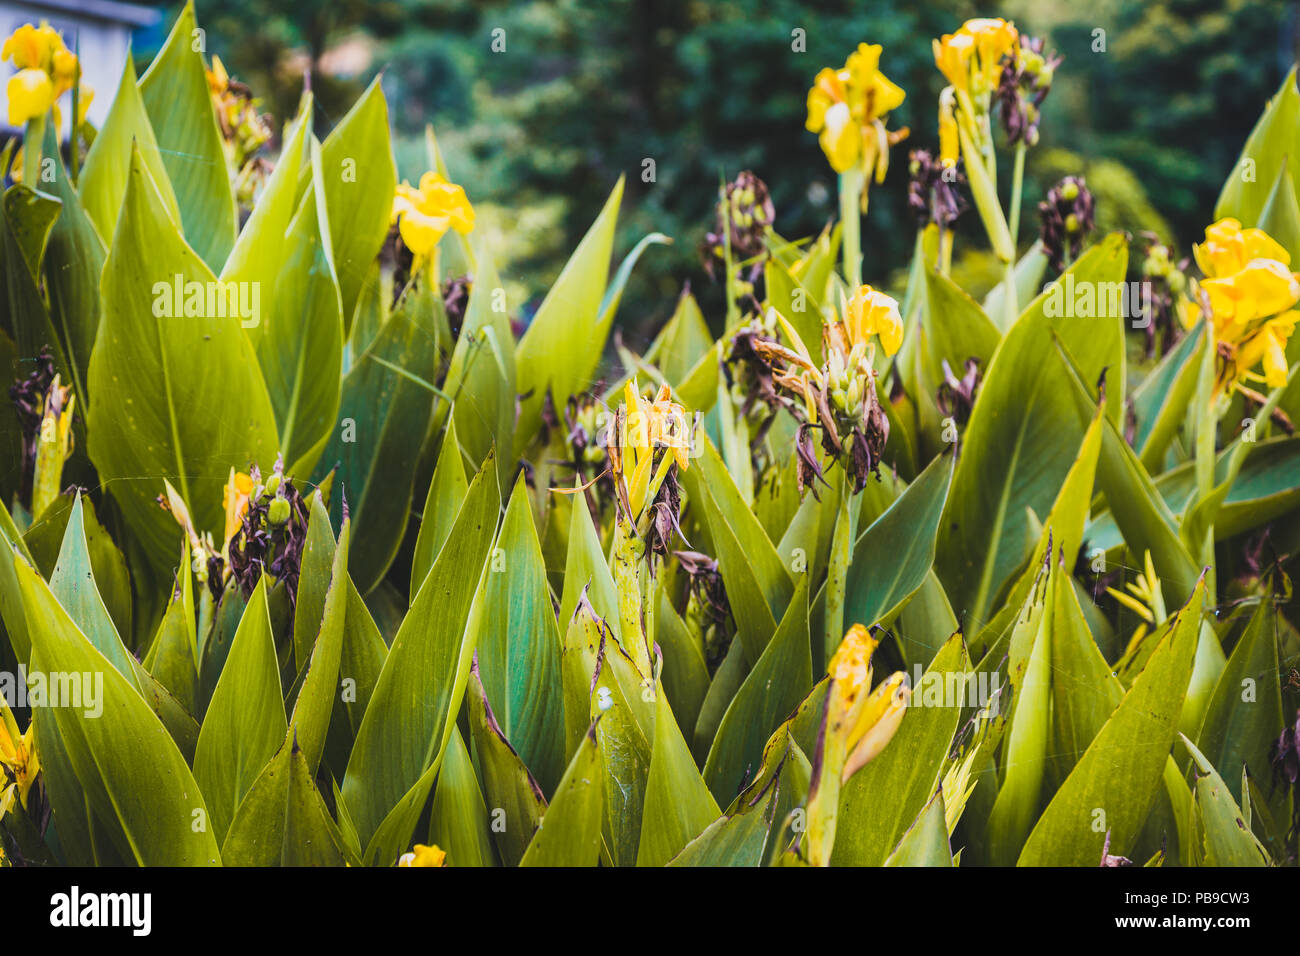 Abstract Natural Nature Yellow Flowers Background Spring And Summer